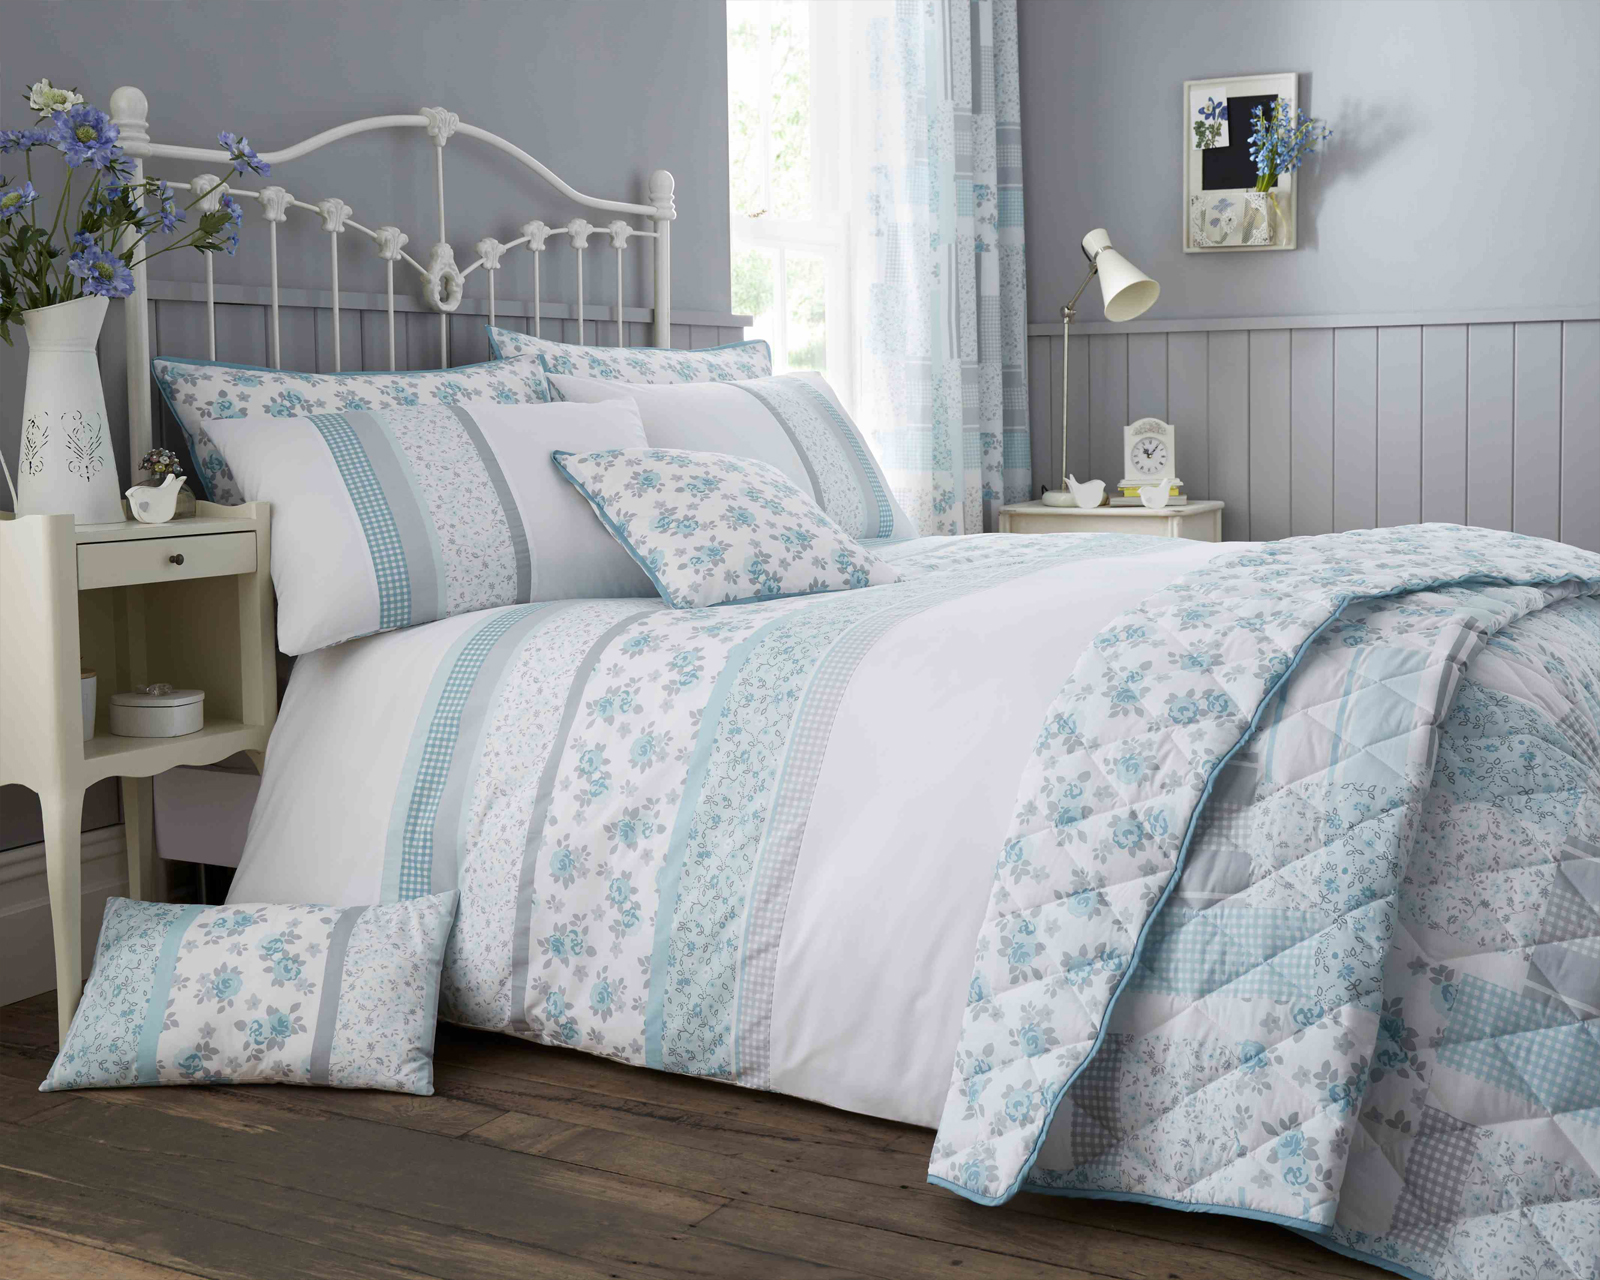 Garden Floral Duck Egg Blue Print Luxury Duvet